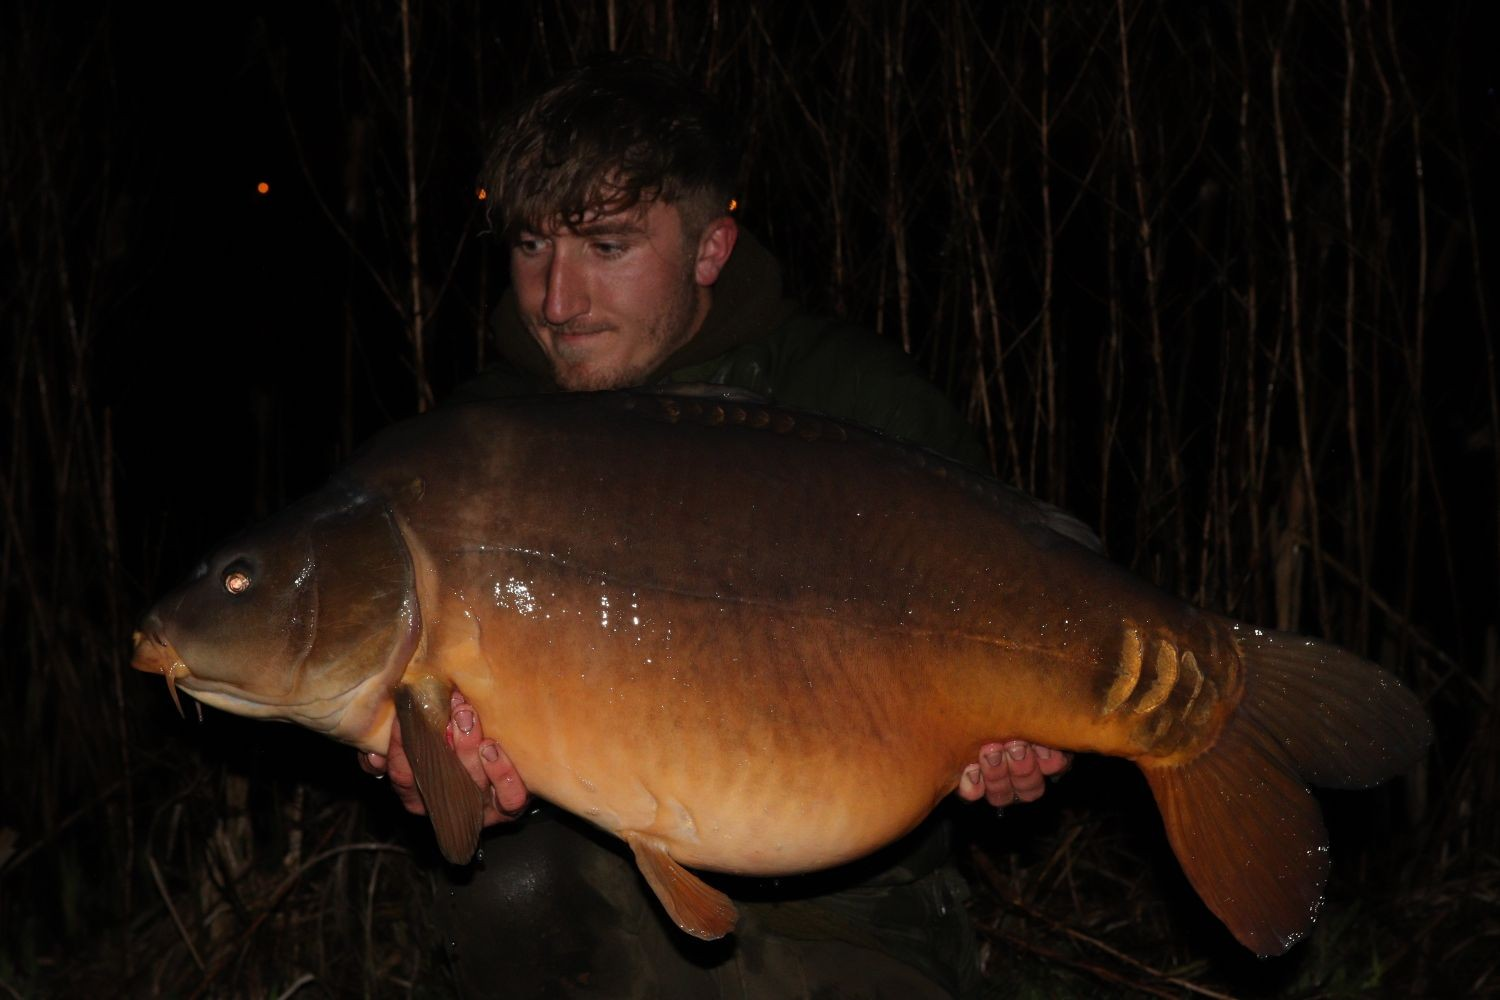 'Richie' 39lb 08oz caught on